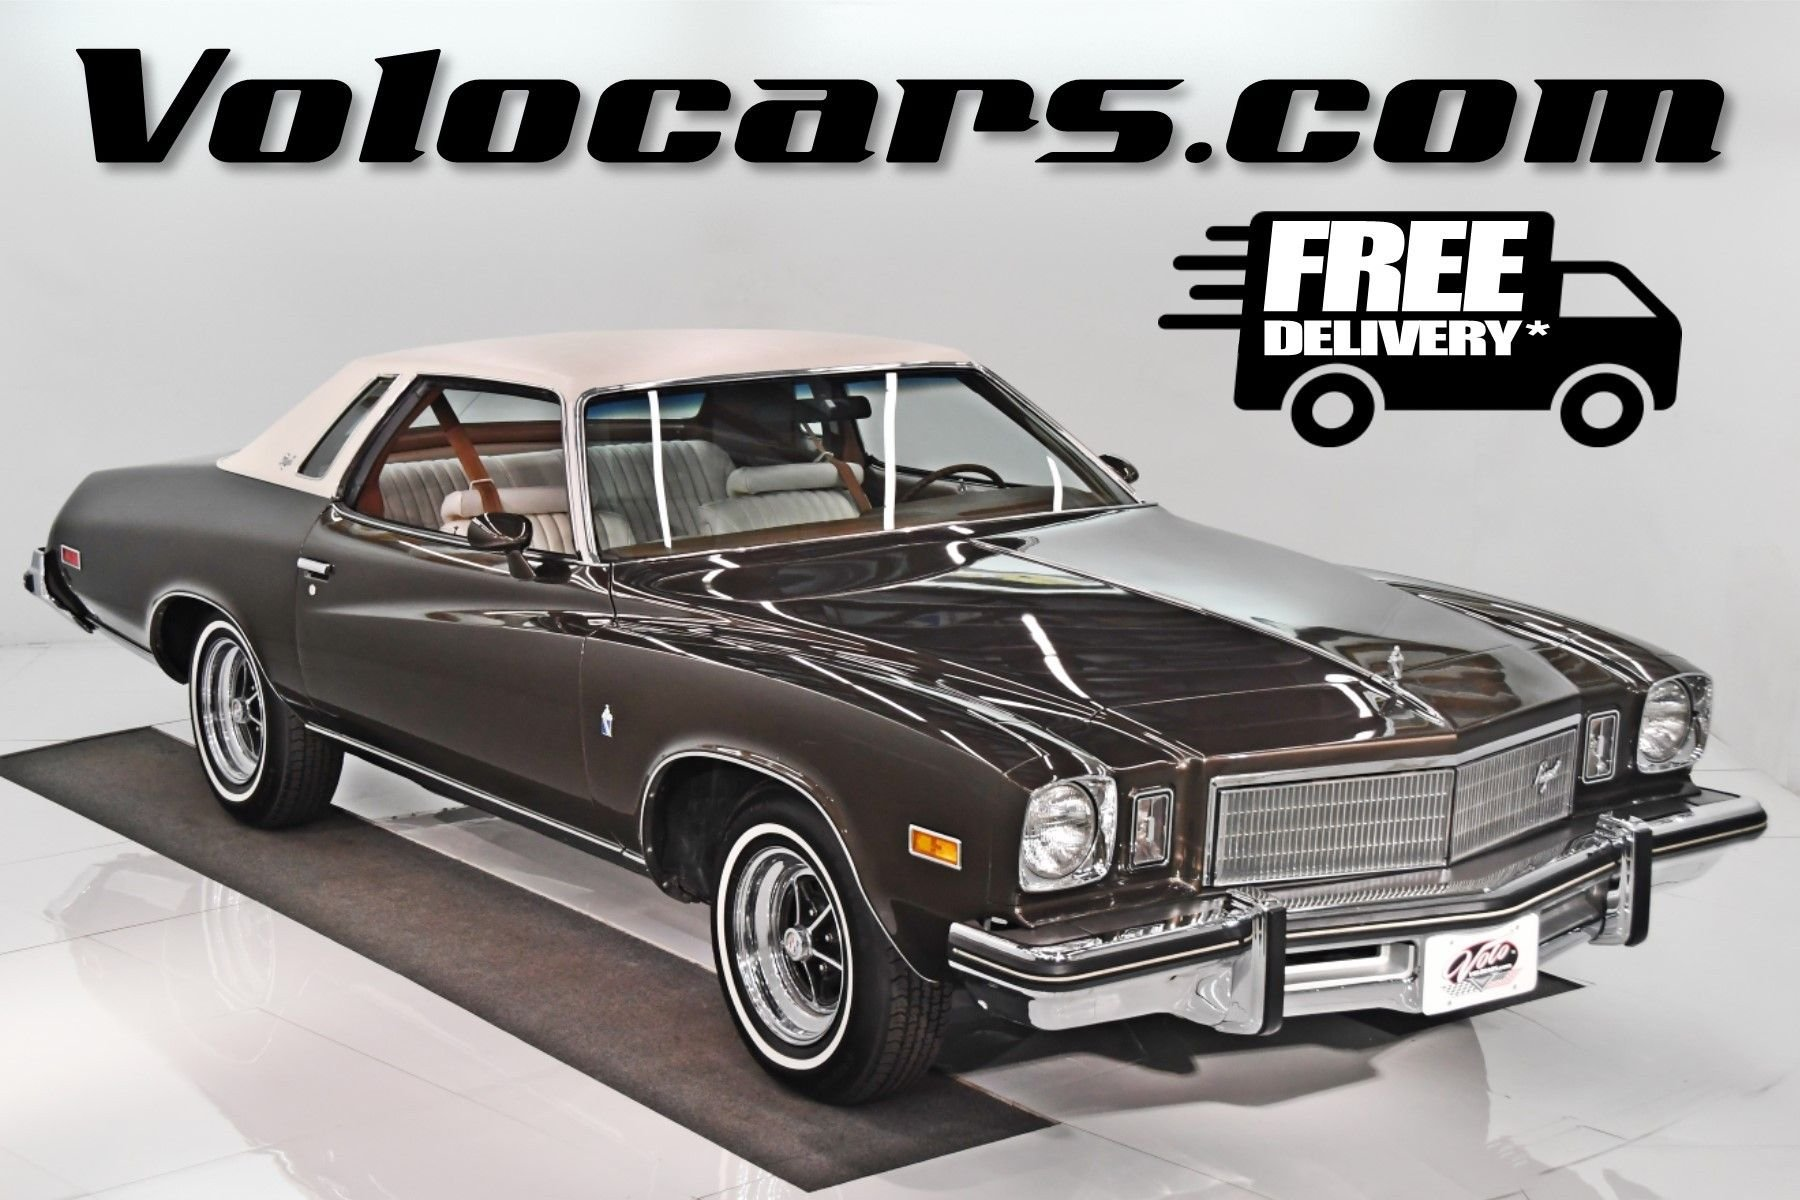 1975 buick regal colonnade